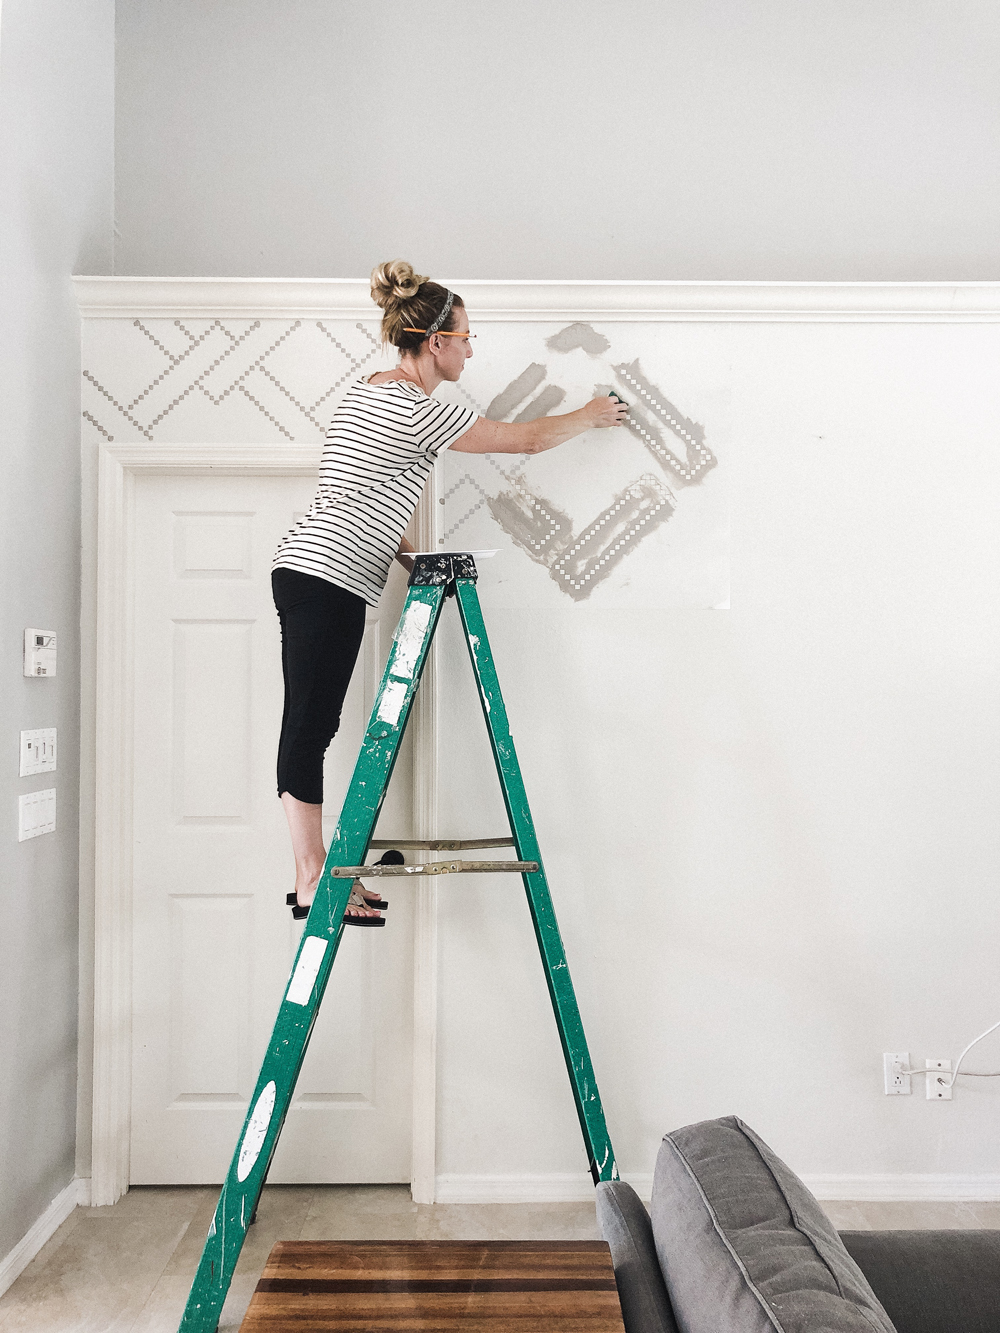 How to stencil a wall - diy tutorial